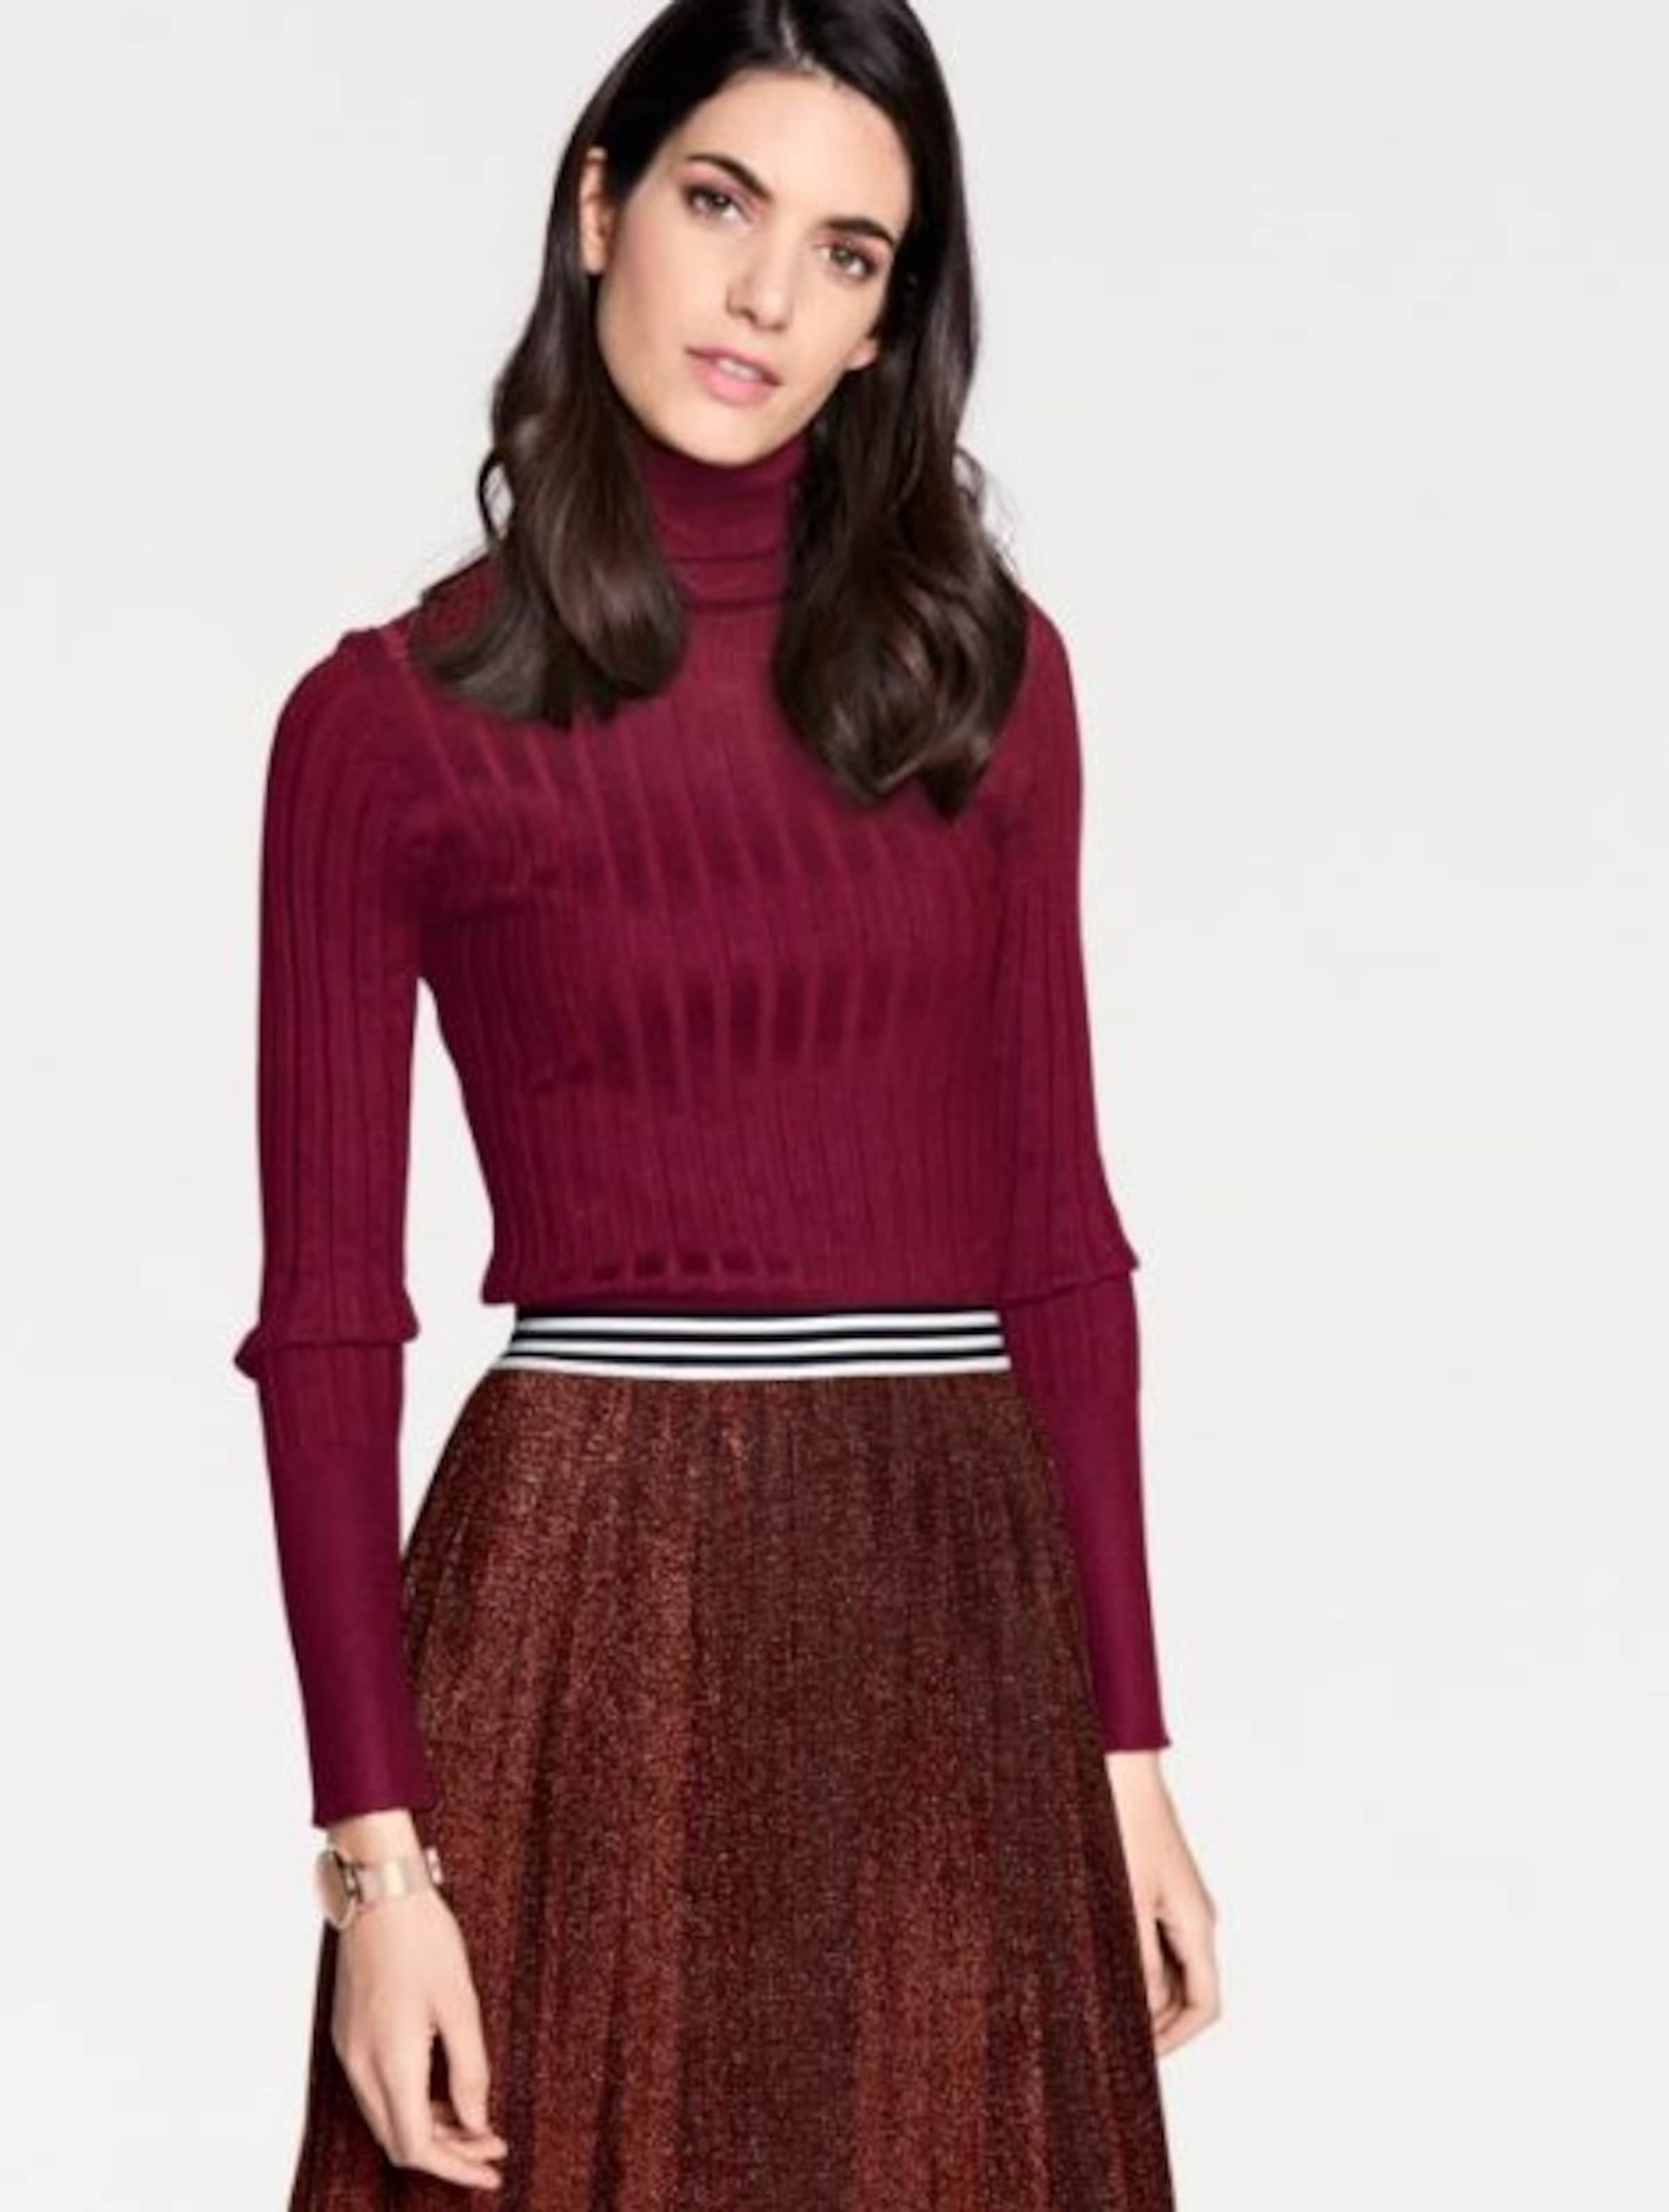 Pullover Bordeaux Pullover Pullover In In Heine Heine Bordeaux Bordeaux Heine In Heine Y7yIb6fgv